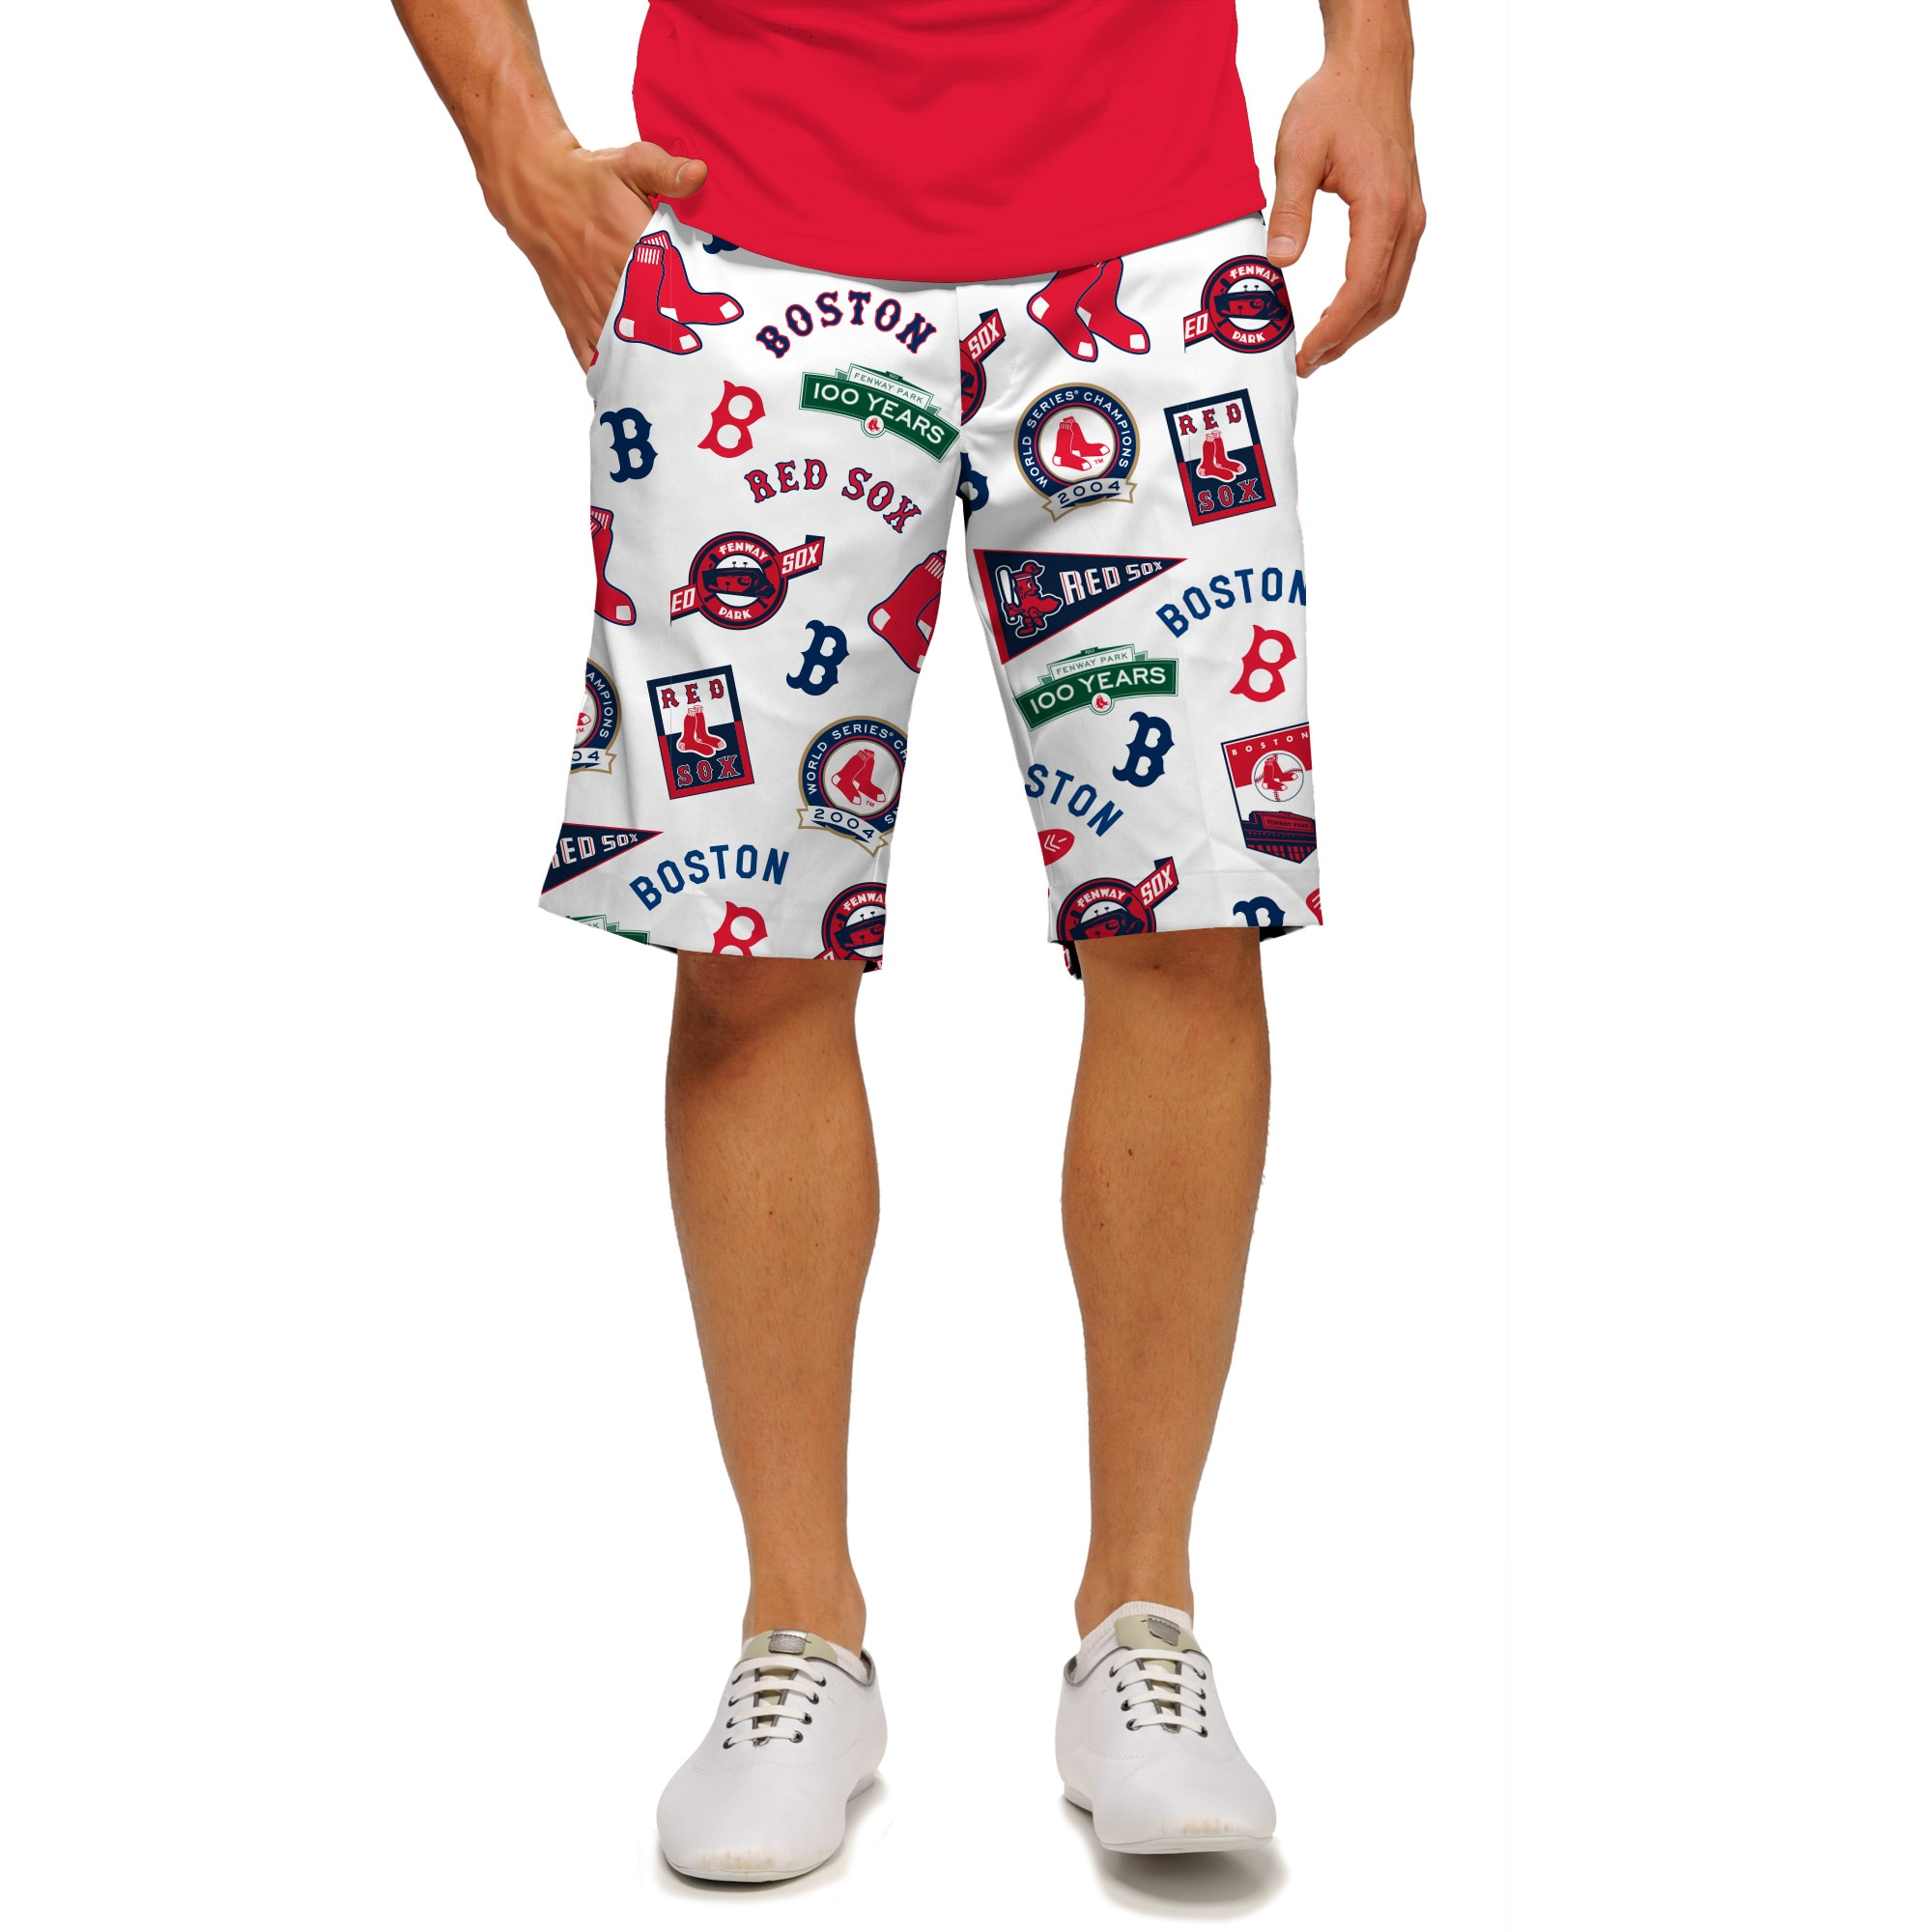 Boston Red Sox Loudmouth StretchTech Shorts - White/Red